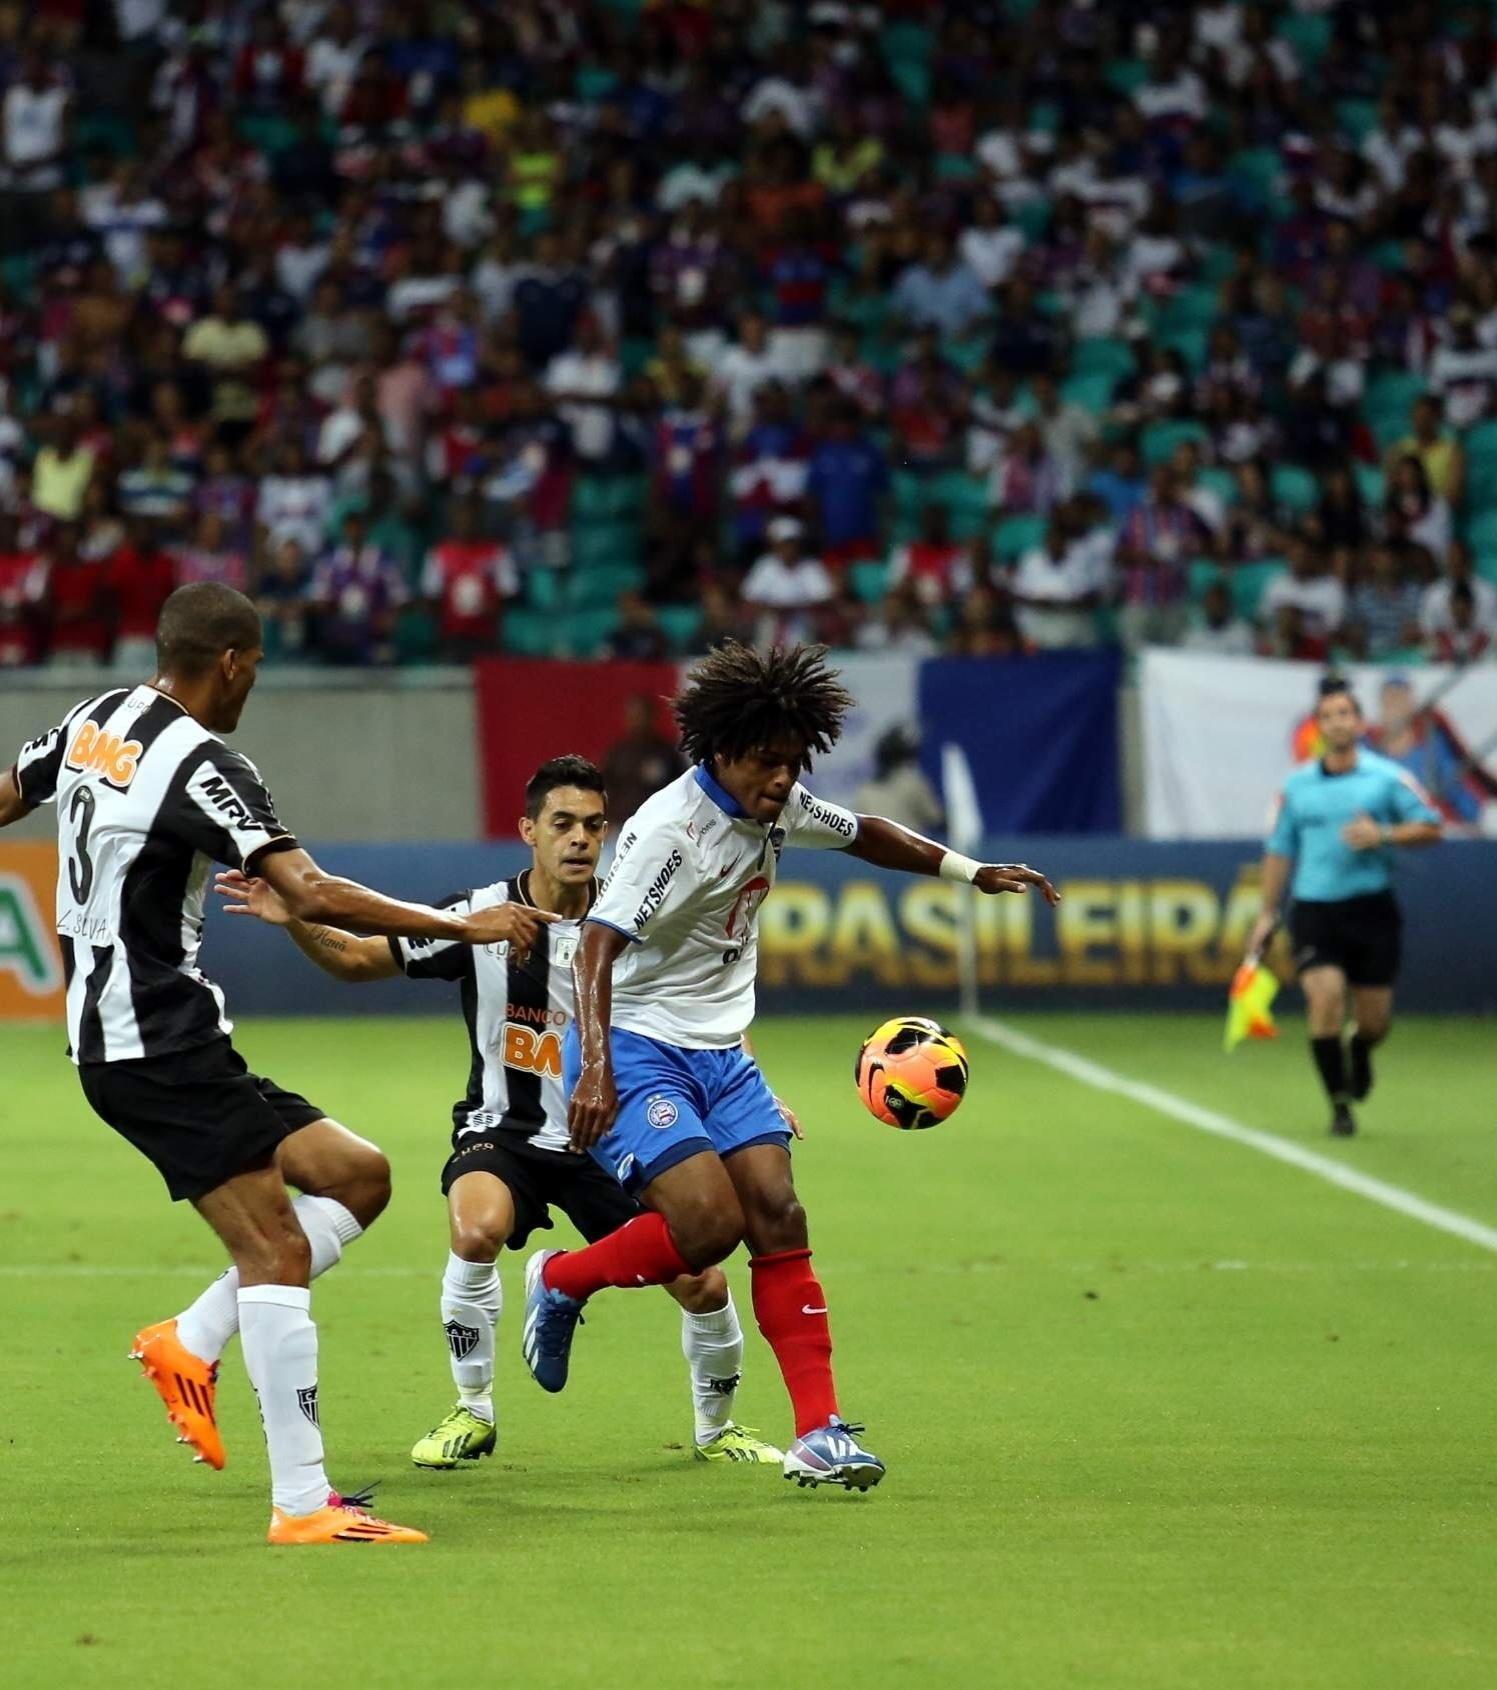 09.nov.2013 - Willian, do Bahia, em disputa com jogadores do Atlético-MG